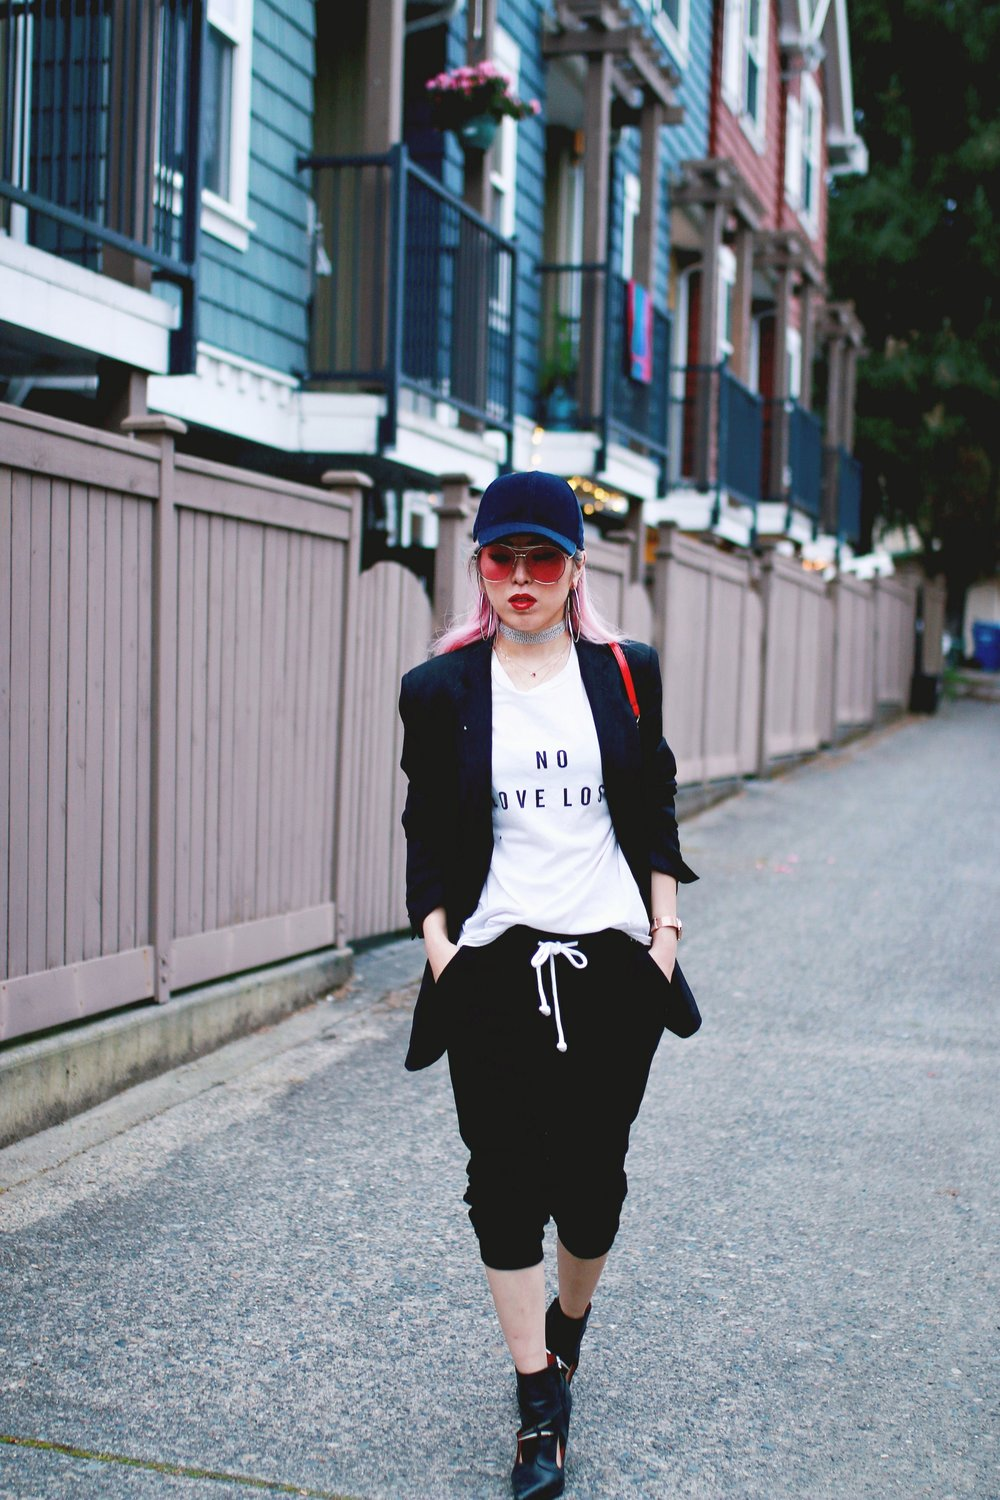 H&M Baseball Cap_Shop Sincerely Jules No LOVE LOST Tee_H&M Sweatpants_YSL Boyfriend Blazer_Zara Choker_Forever 21 Hoop Earrings_Mellow World Red Bag_Jeffrey Campbell Booties_L'Oreal Red Lipstick_Aikas Love Closet_Seattle Fashion Style Blogger_Pink Hair 2